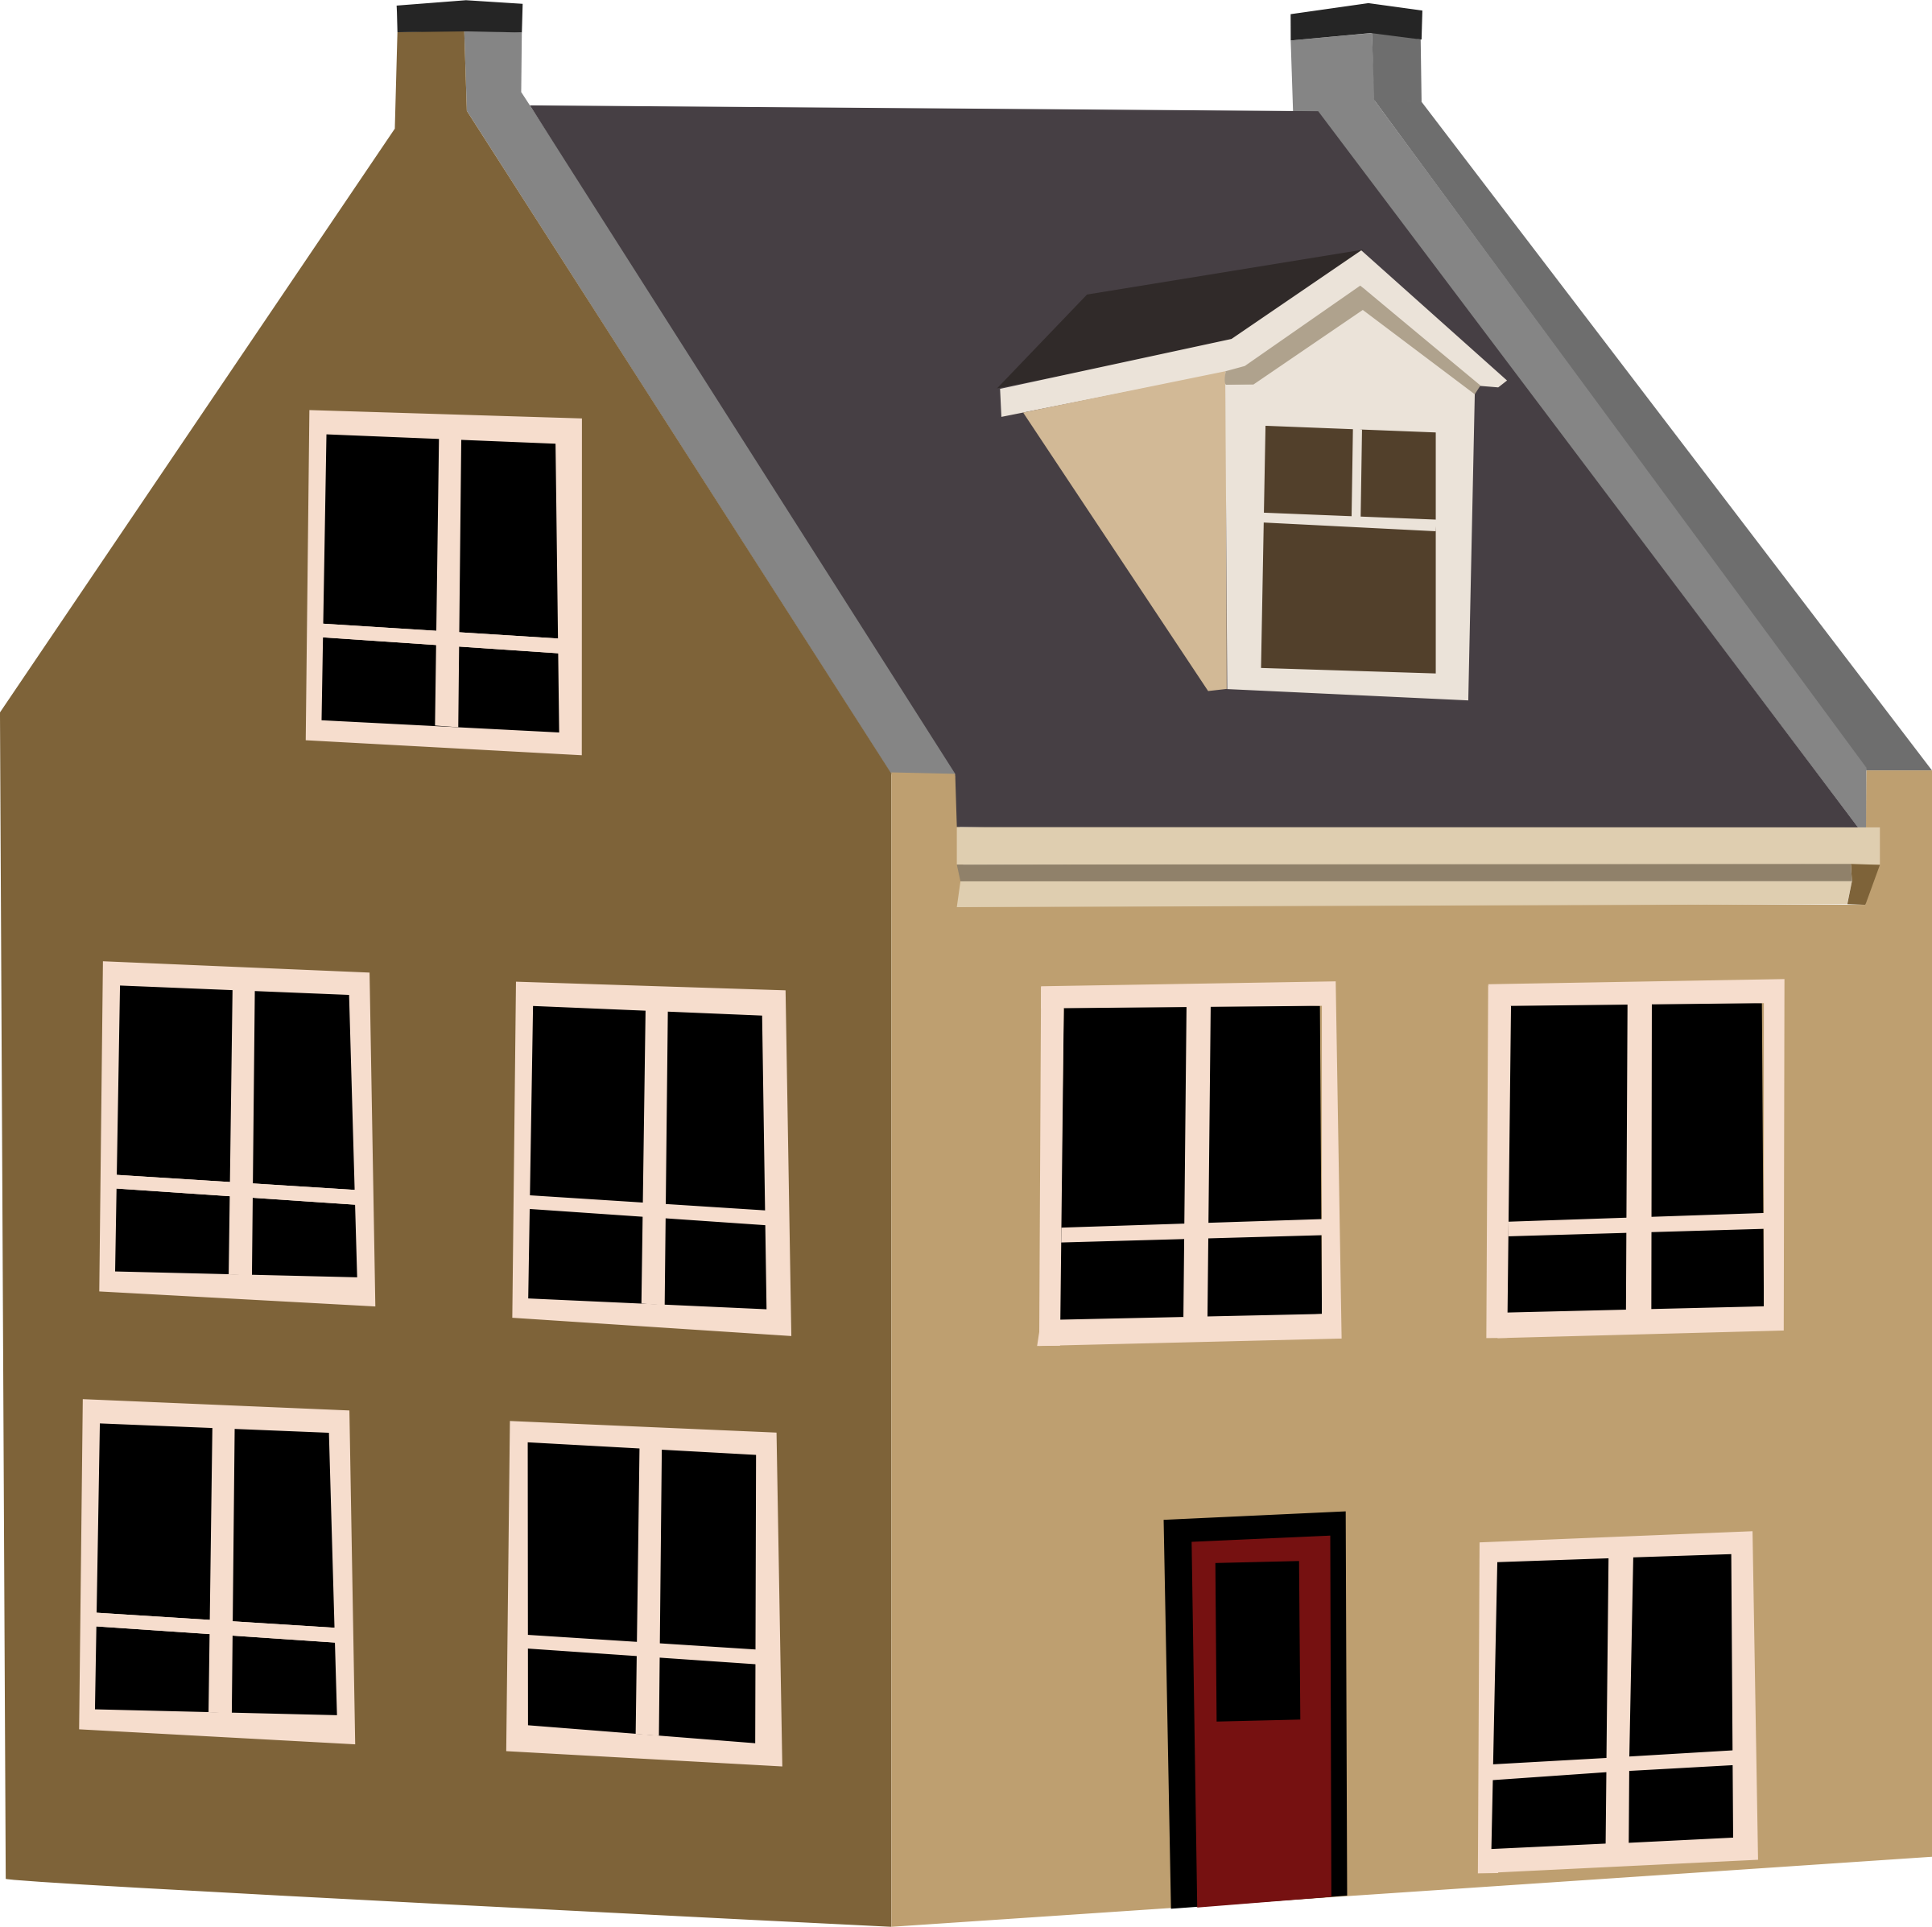 village-house.png